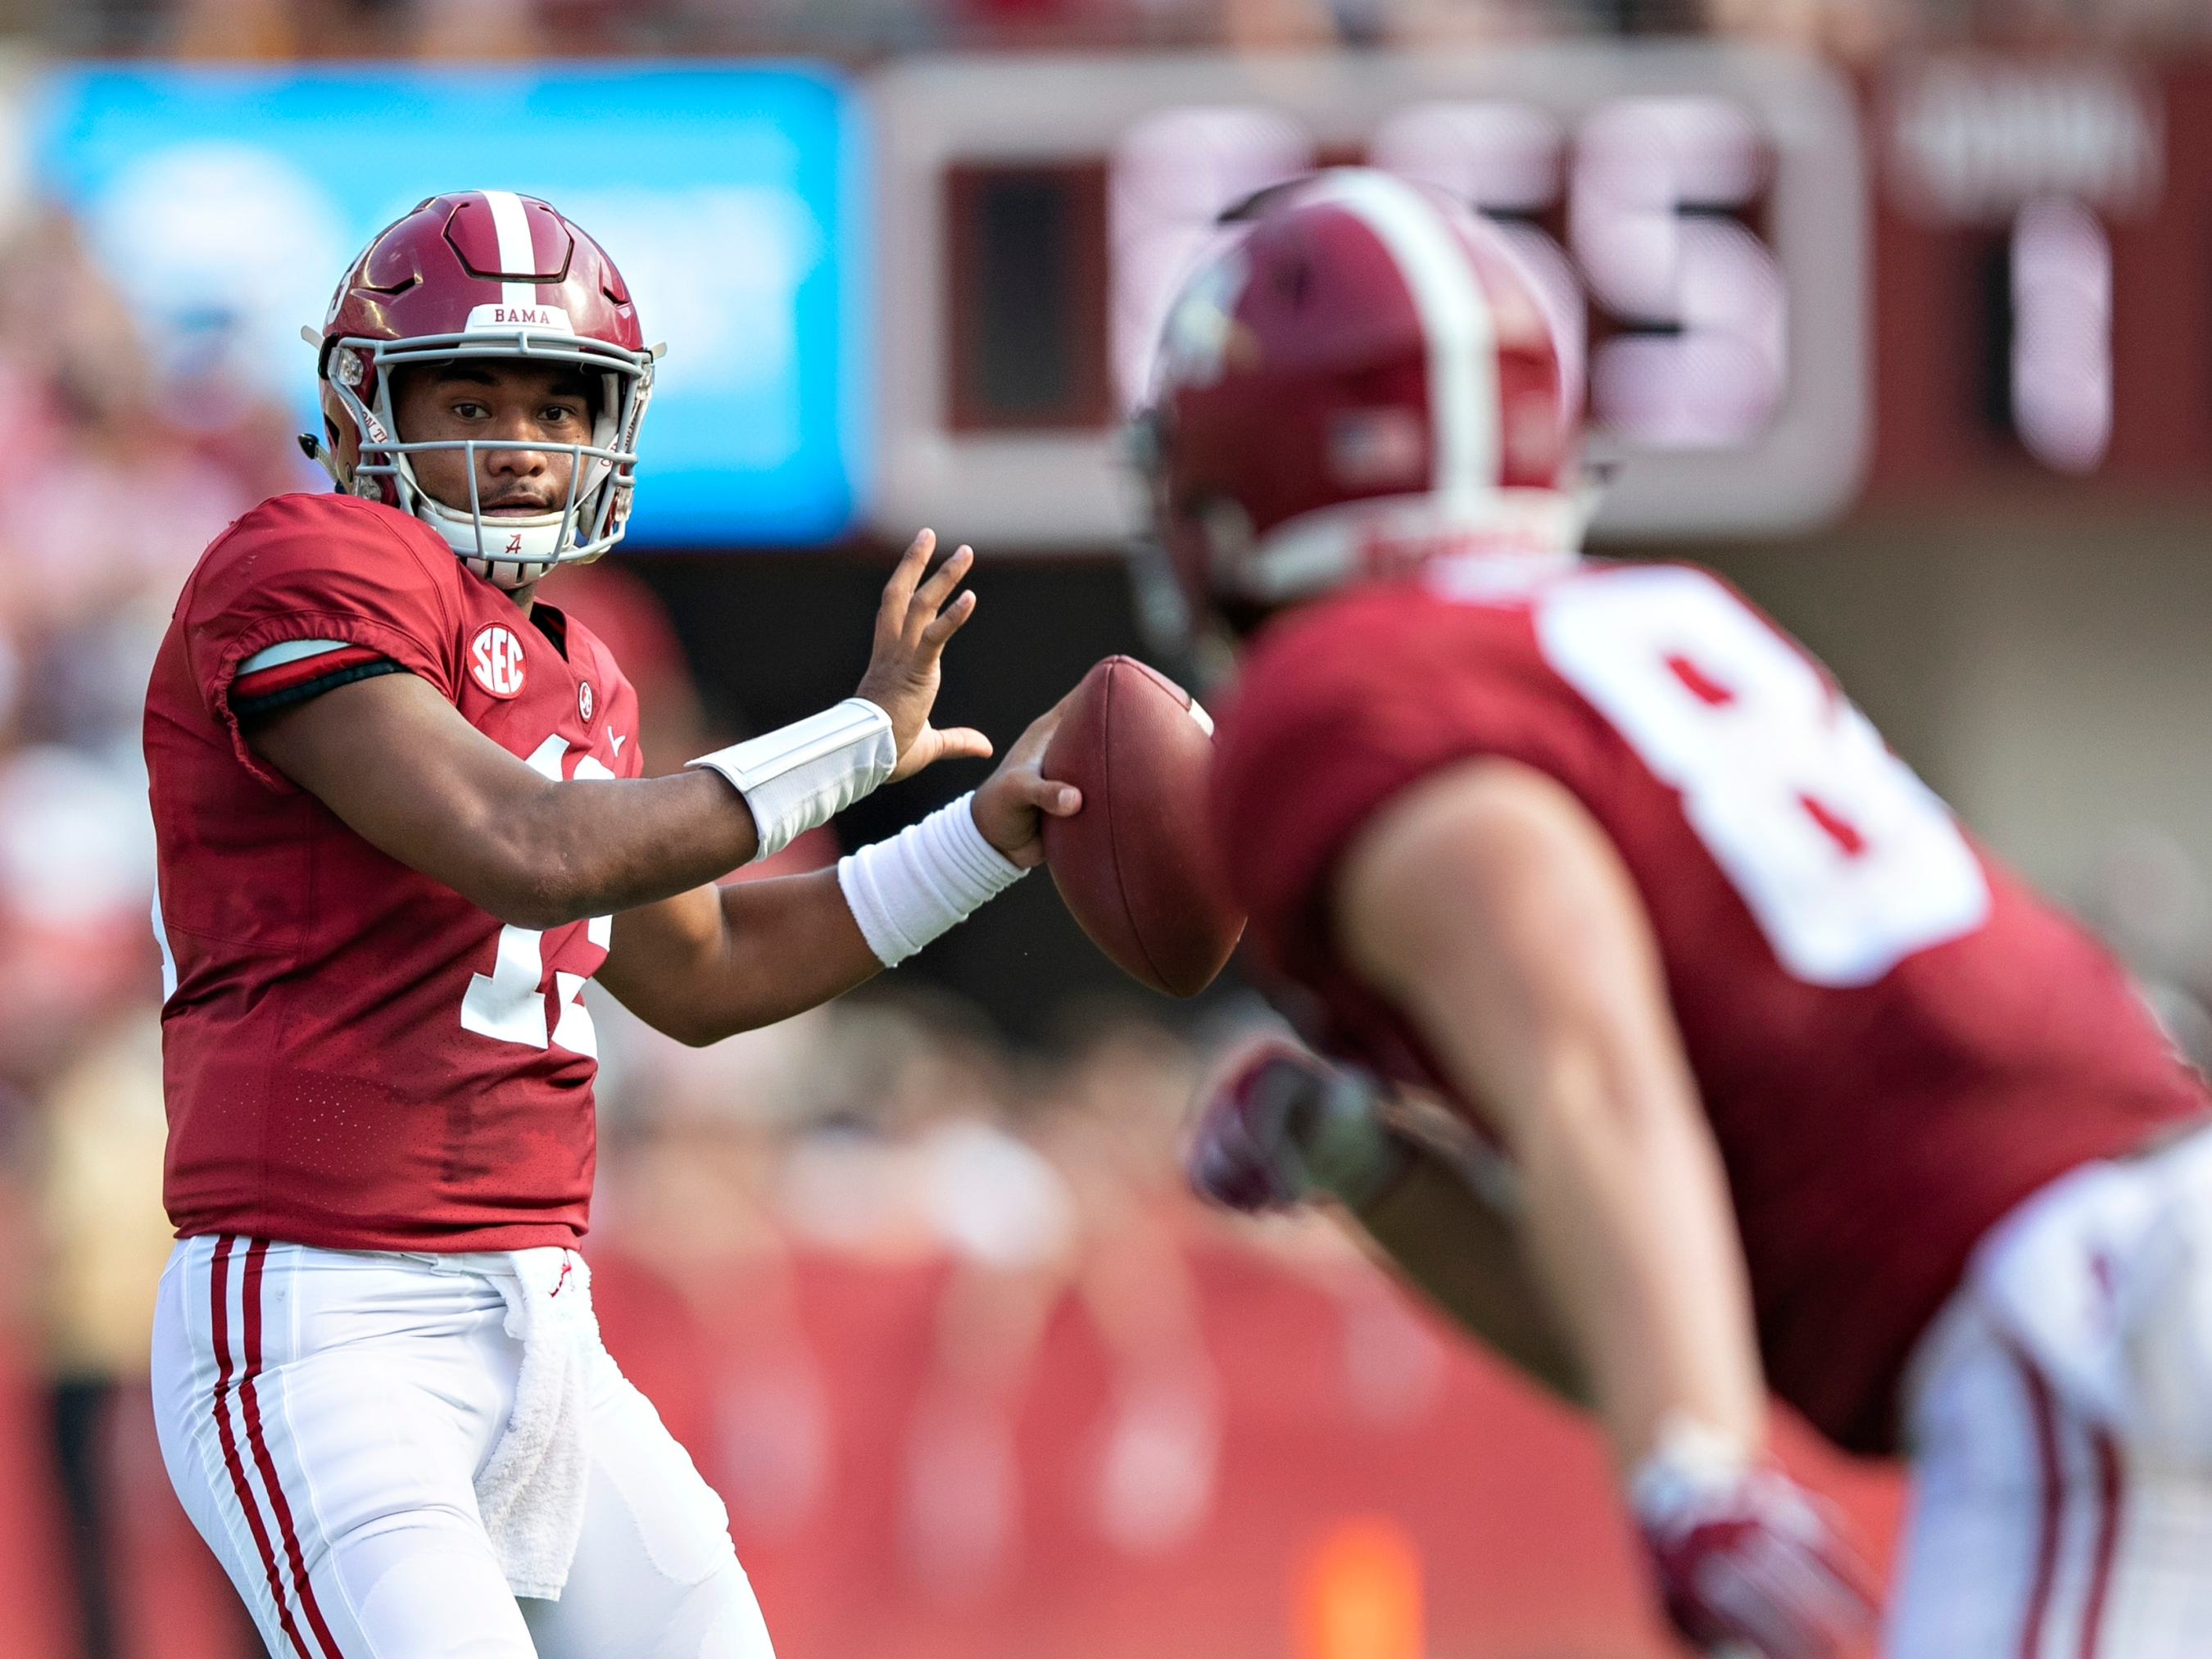 Alabama S Offense Is Now As Terrifying As Its Defense Fivethirtyeight